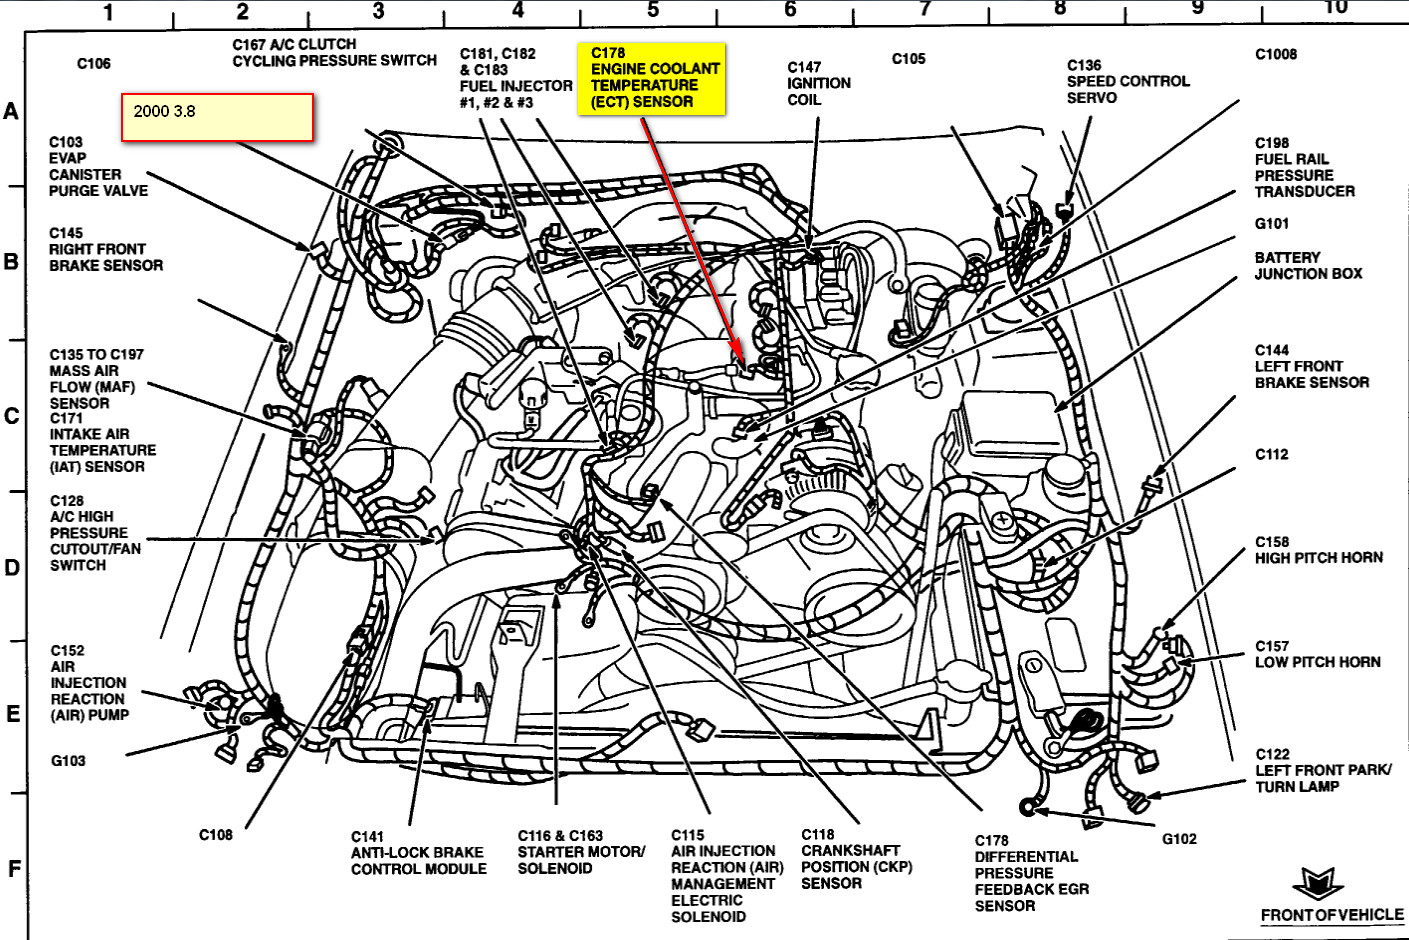 1991 Mazda Miata Engine Diagram Simple Guide About Wiring 2013 Ford Mustang 3800 Temperature Sensor Location Free